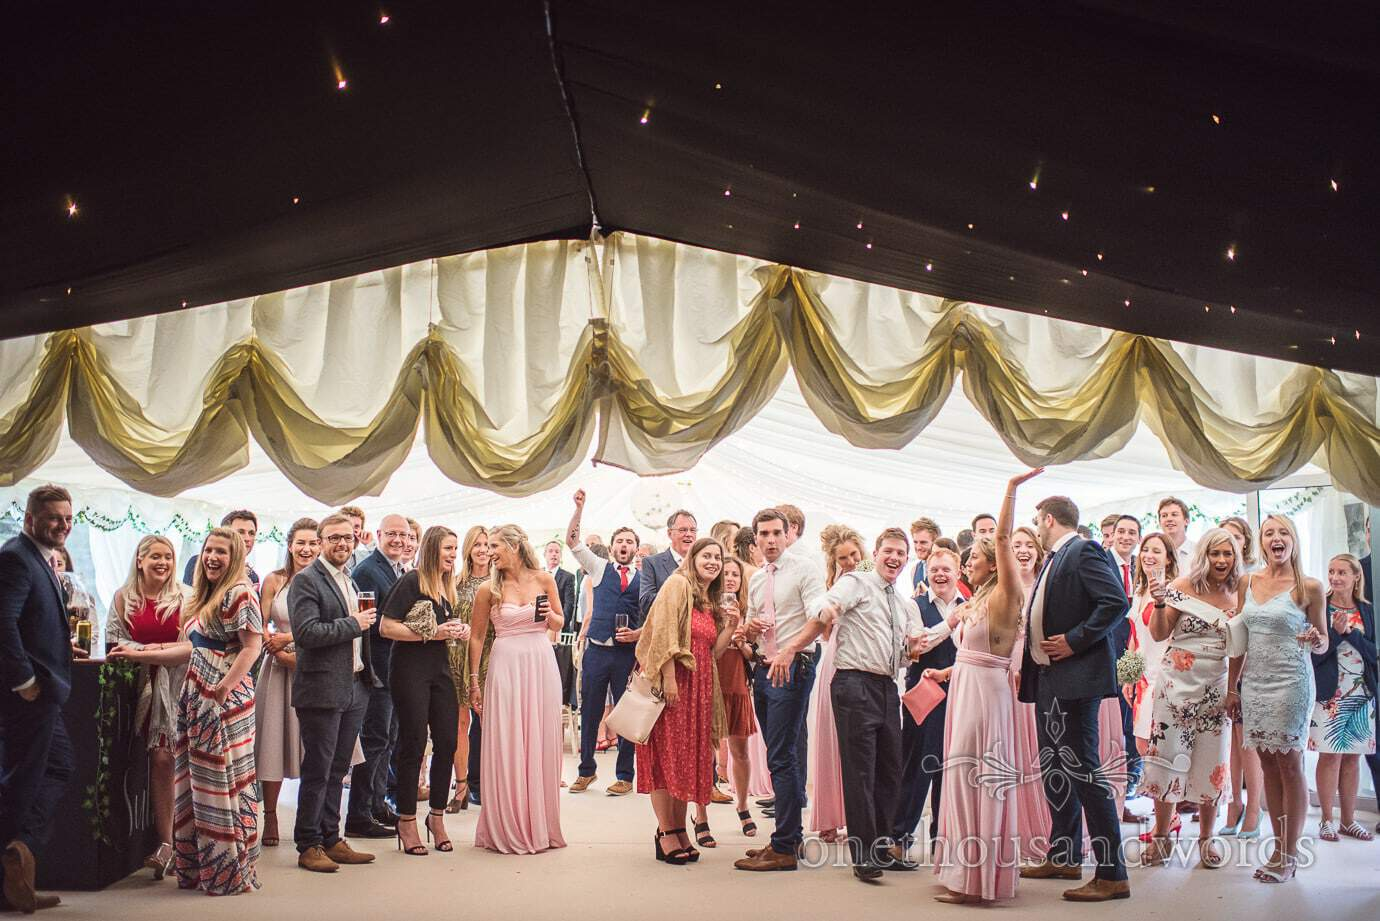 Wedding star cloth marquee dance floor is revealed to cheering wedding guests